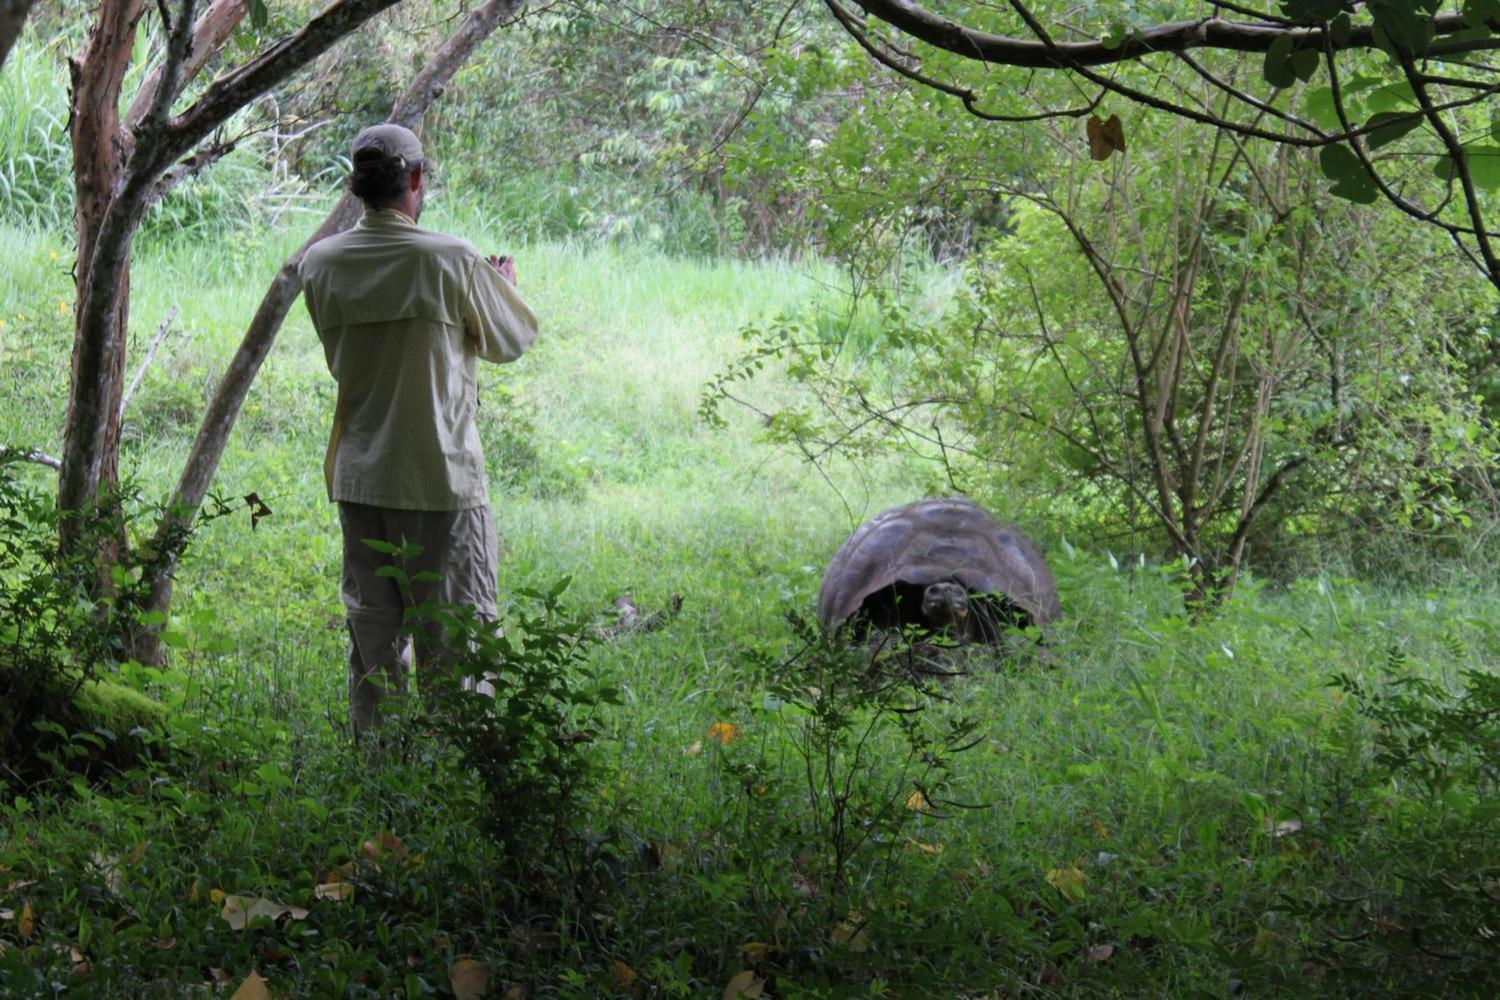 ecuador-galapagos-islands-guide-photographing-giant-tortoise